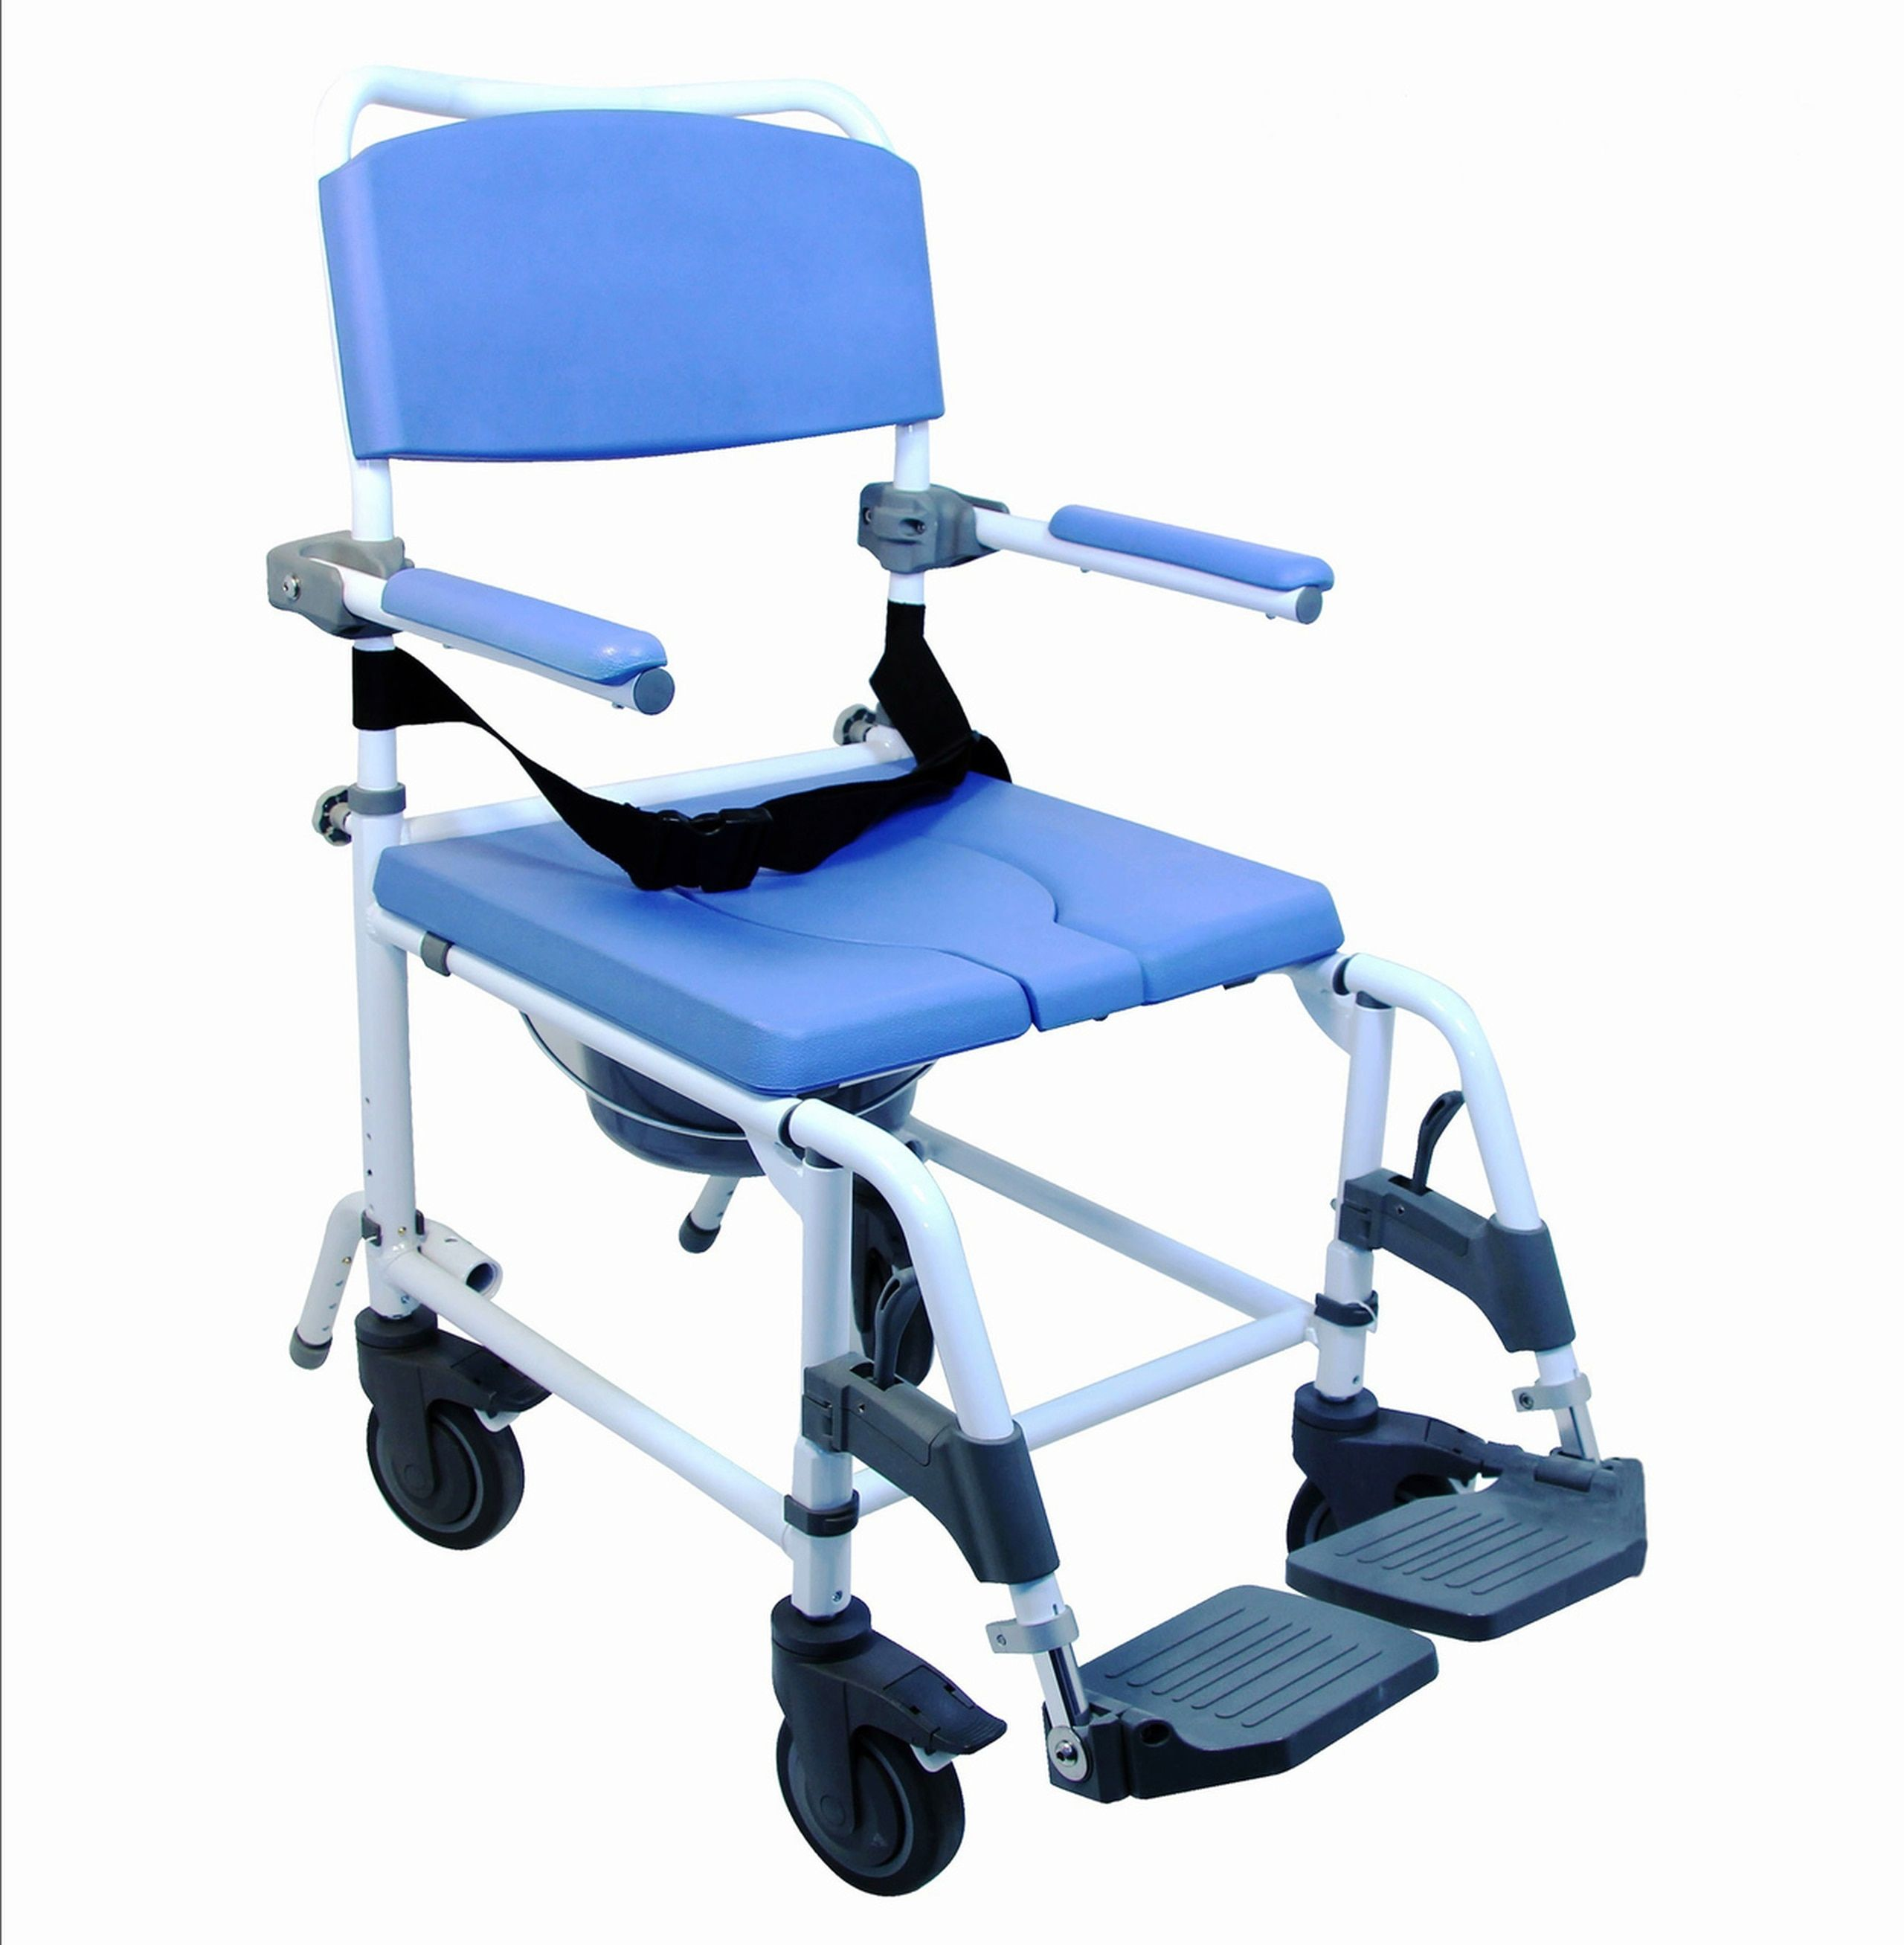 Best Basic Shower Commode Chair Shower commode chair